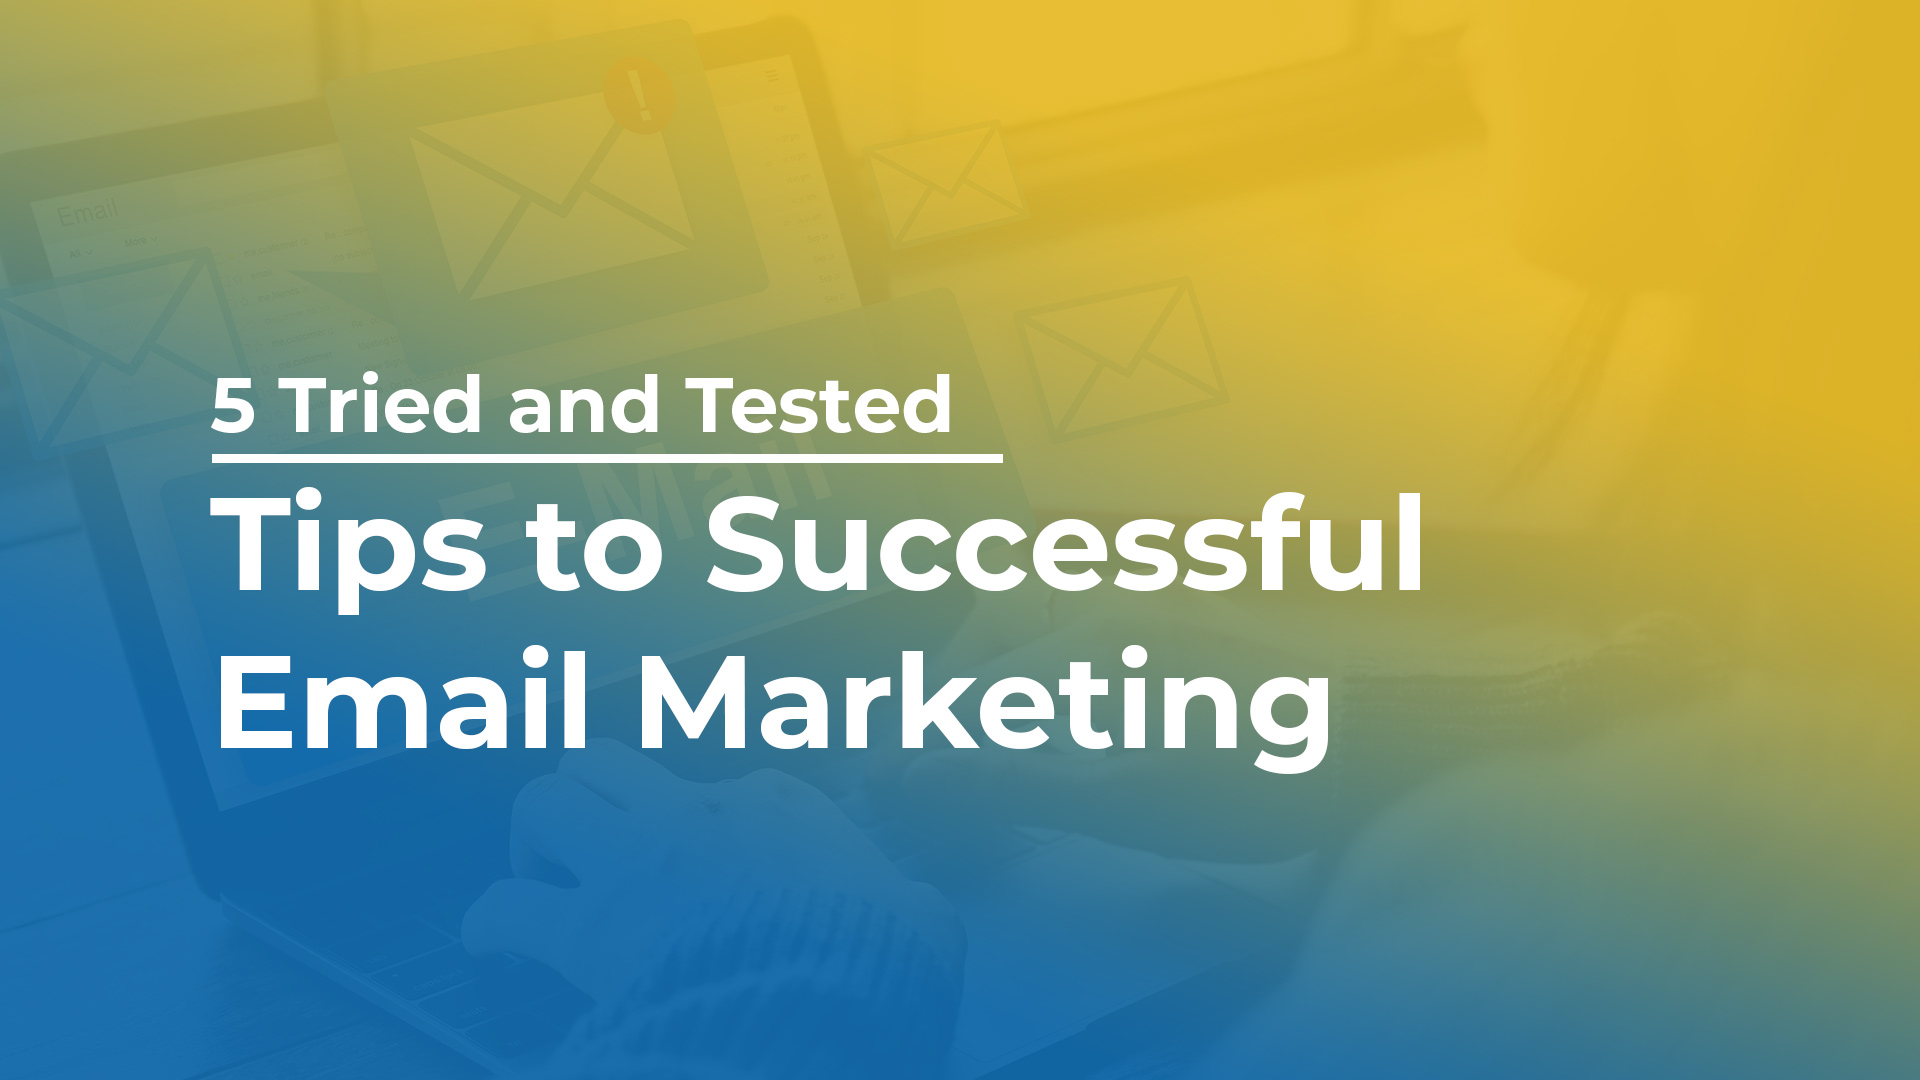 5 Tried and Tested Tips to Successful Email Marketing